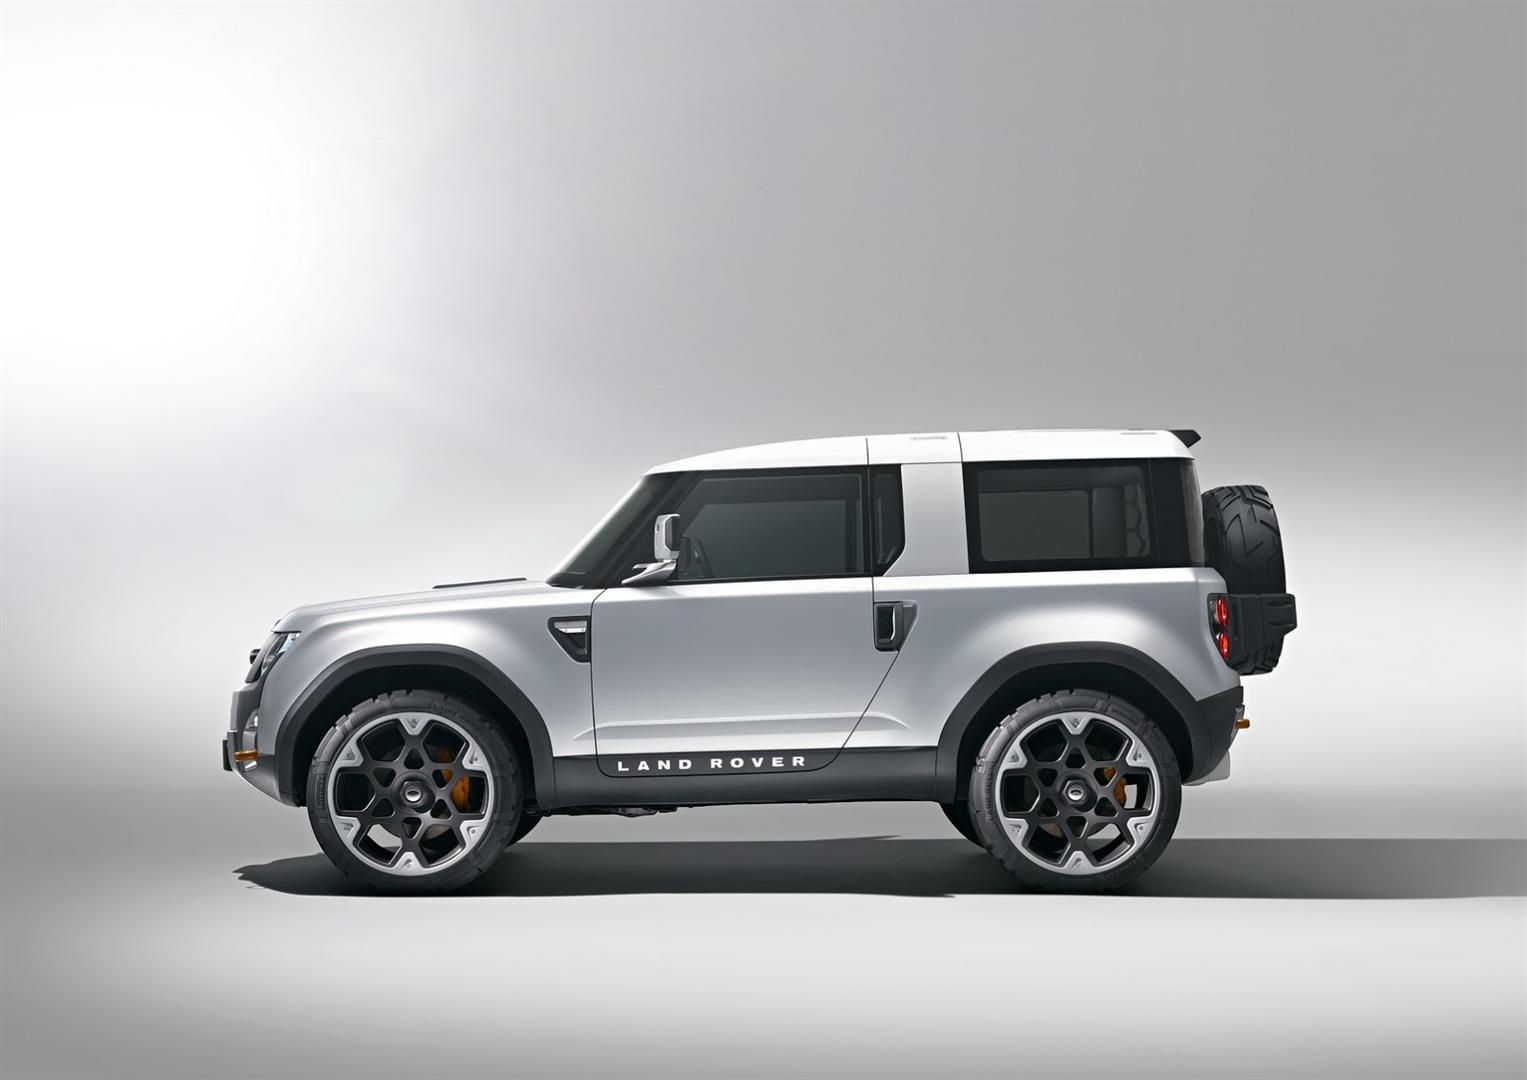 2020 Land Rover Defender 2015 Price Usa 2016 Jeep 2017 Value